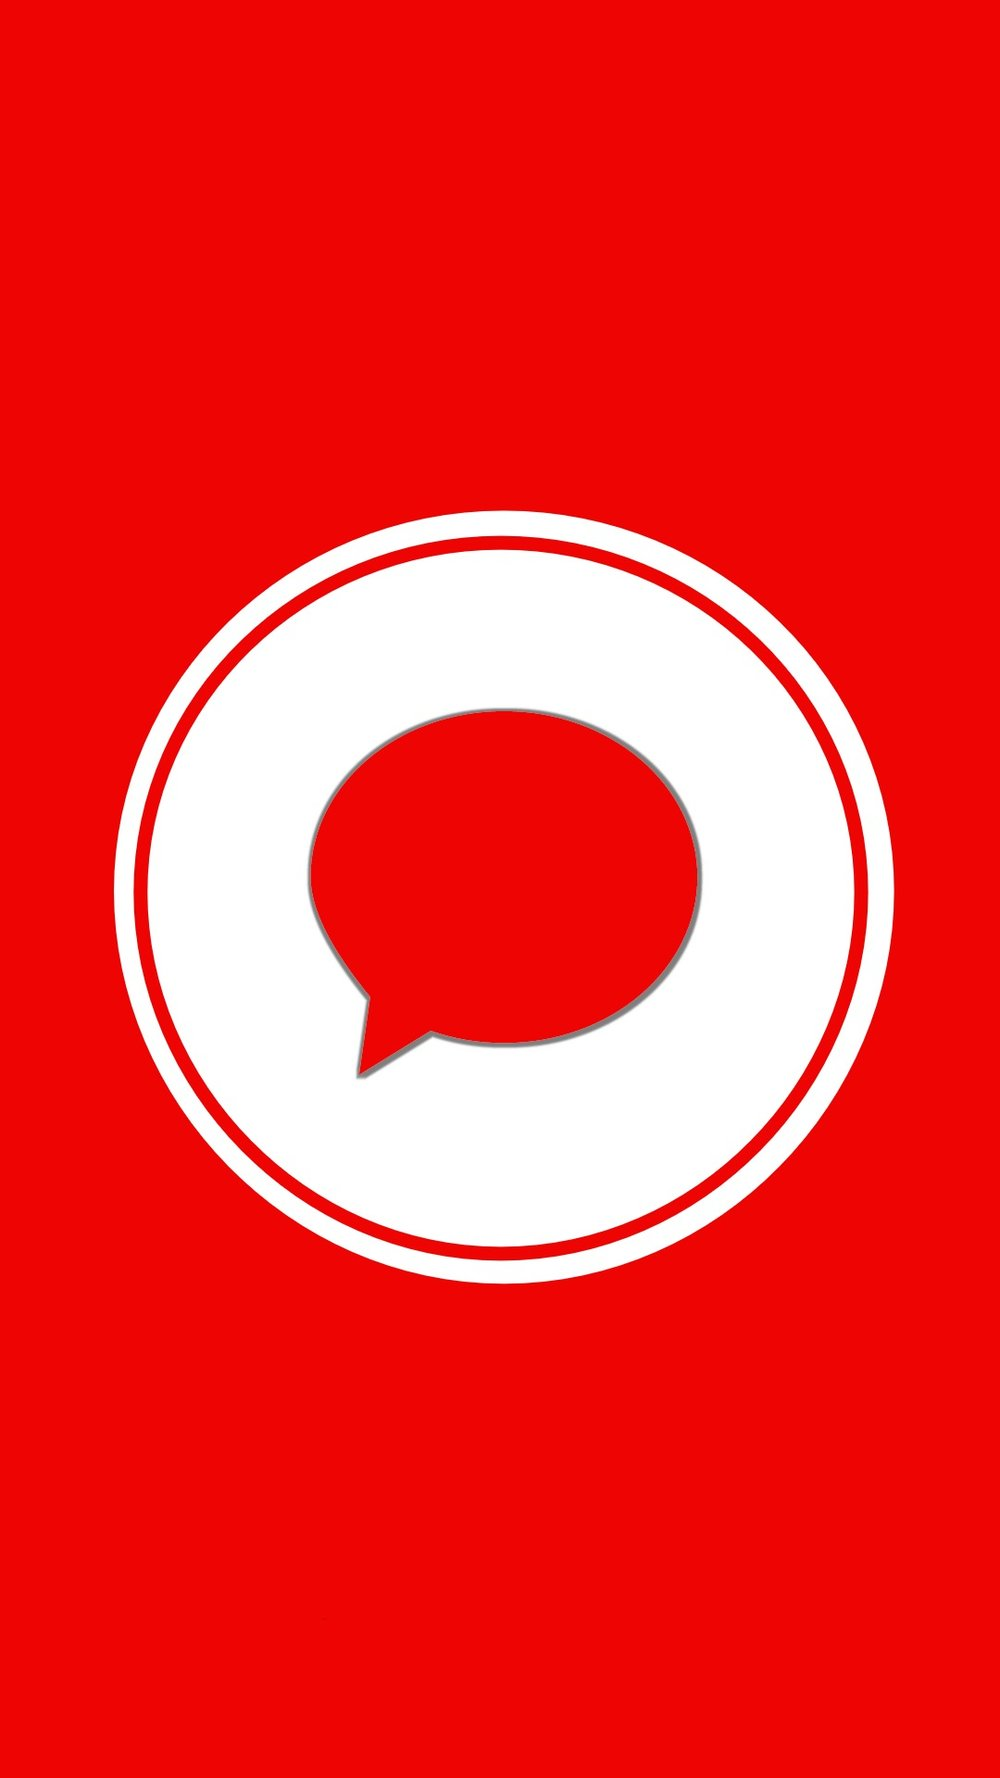 Instagram-cover-chat-red-lotnotes.com.jpg